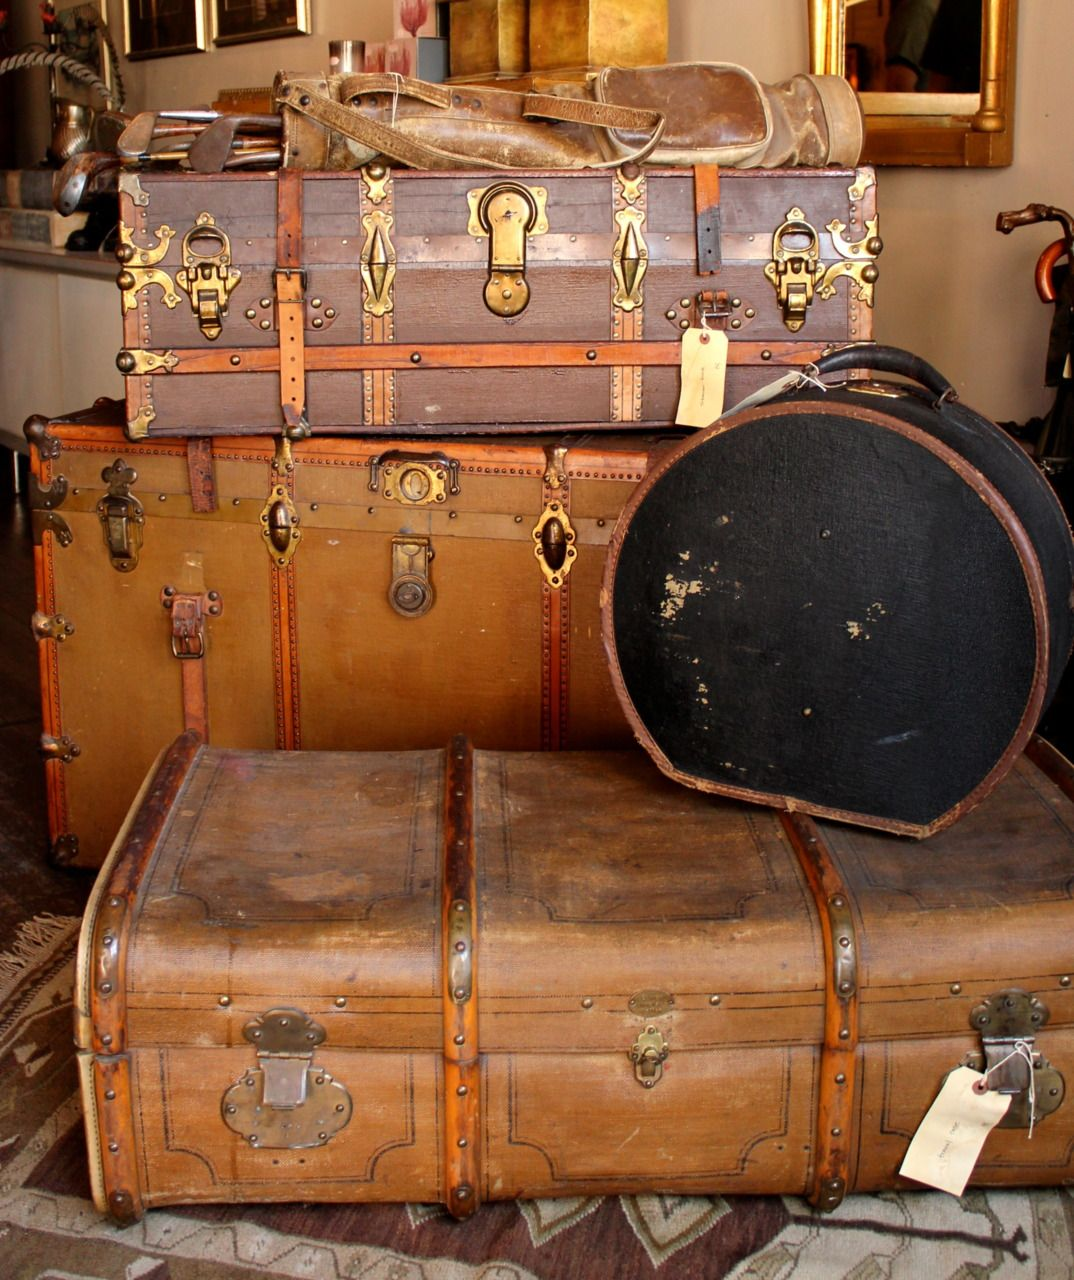 Unframed 11x14 San Francisco Print On Wood Etsy Vintage Luggage Old Luggage Vintage Trunks